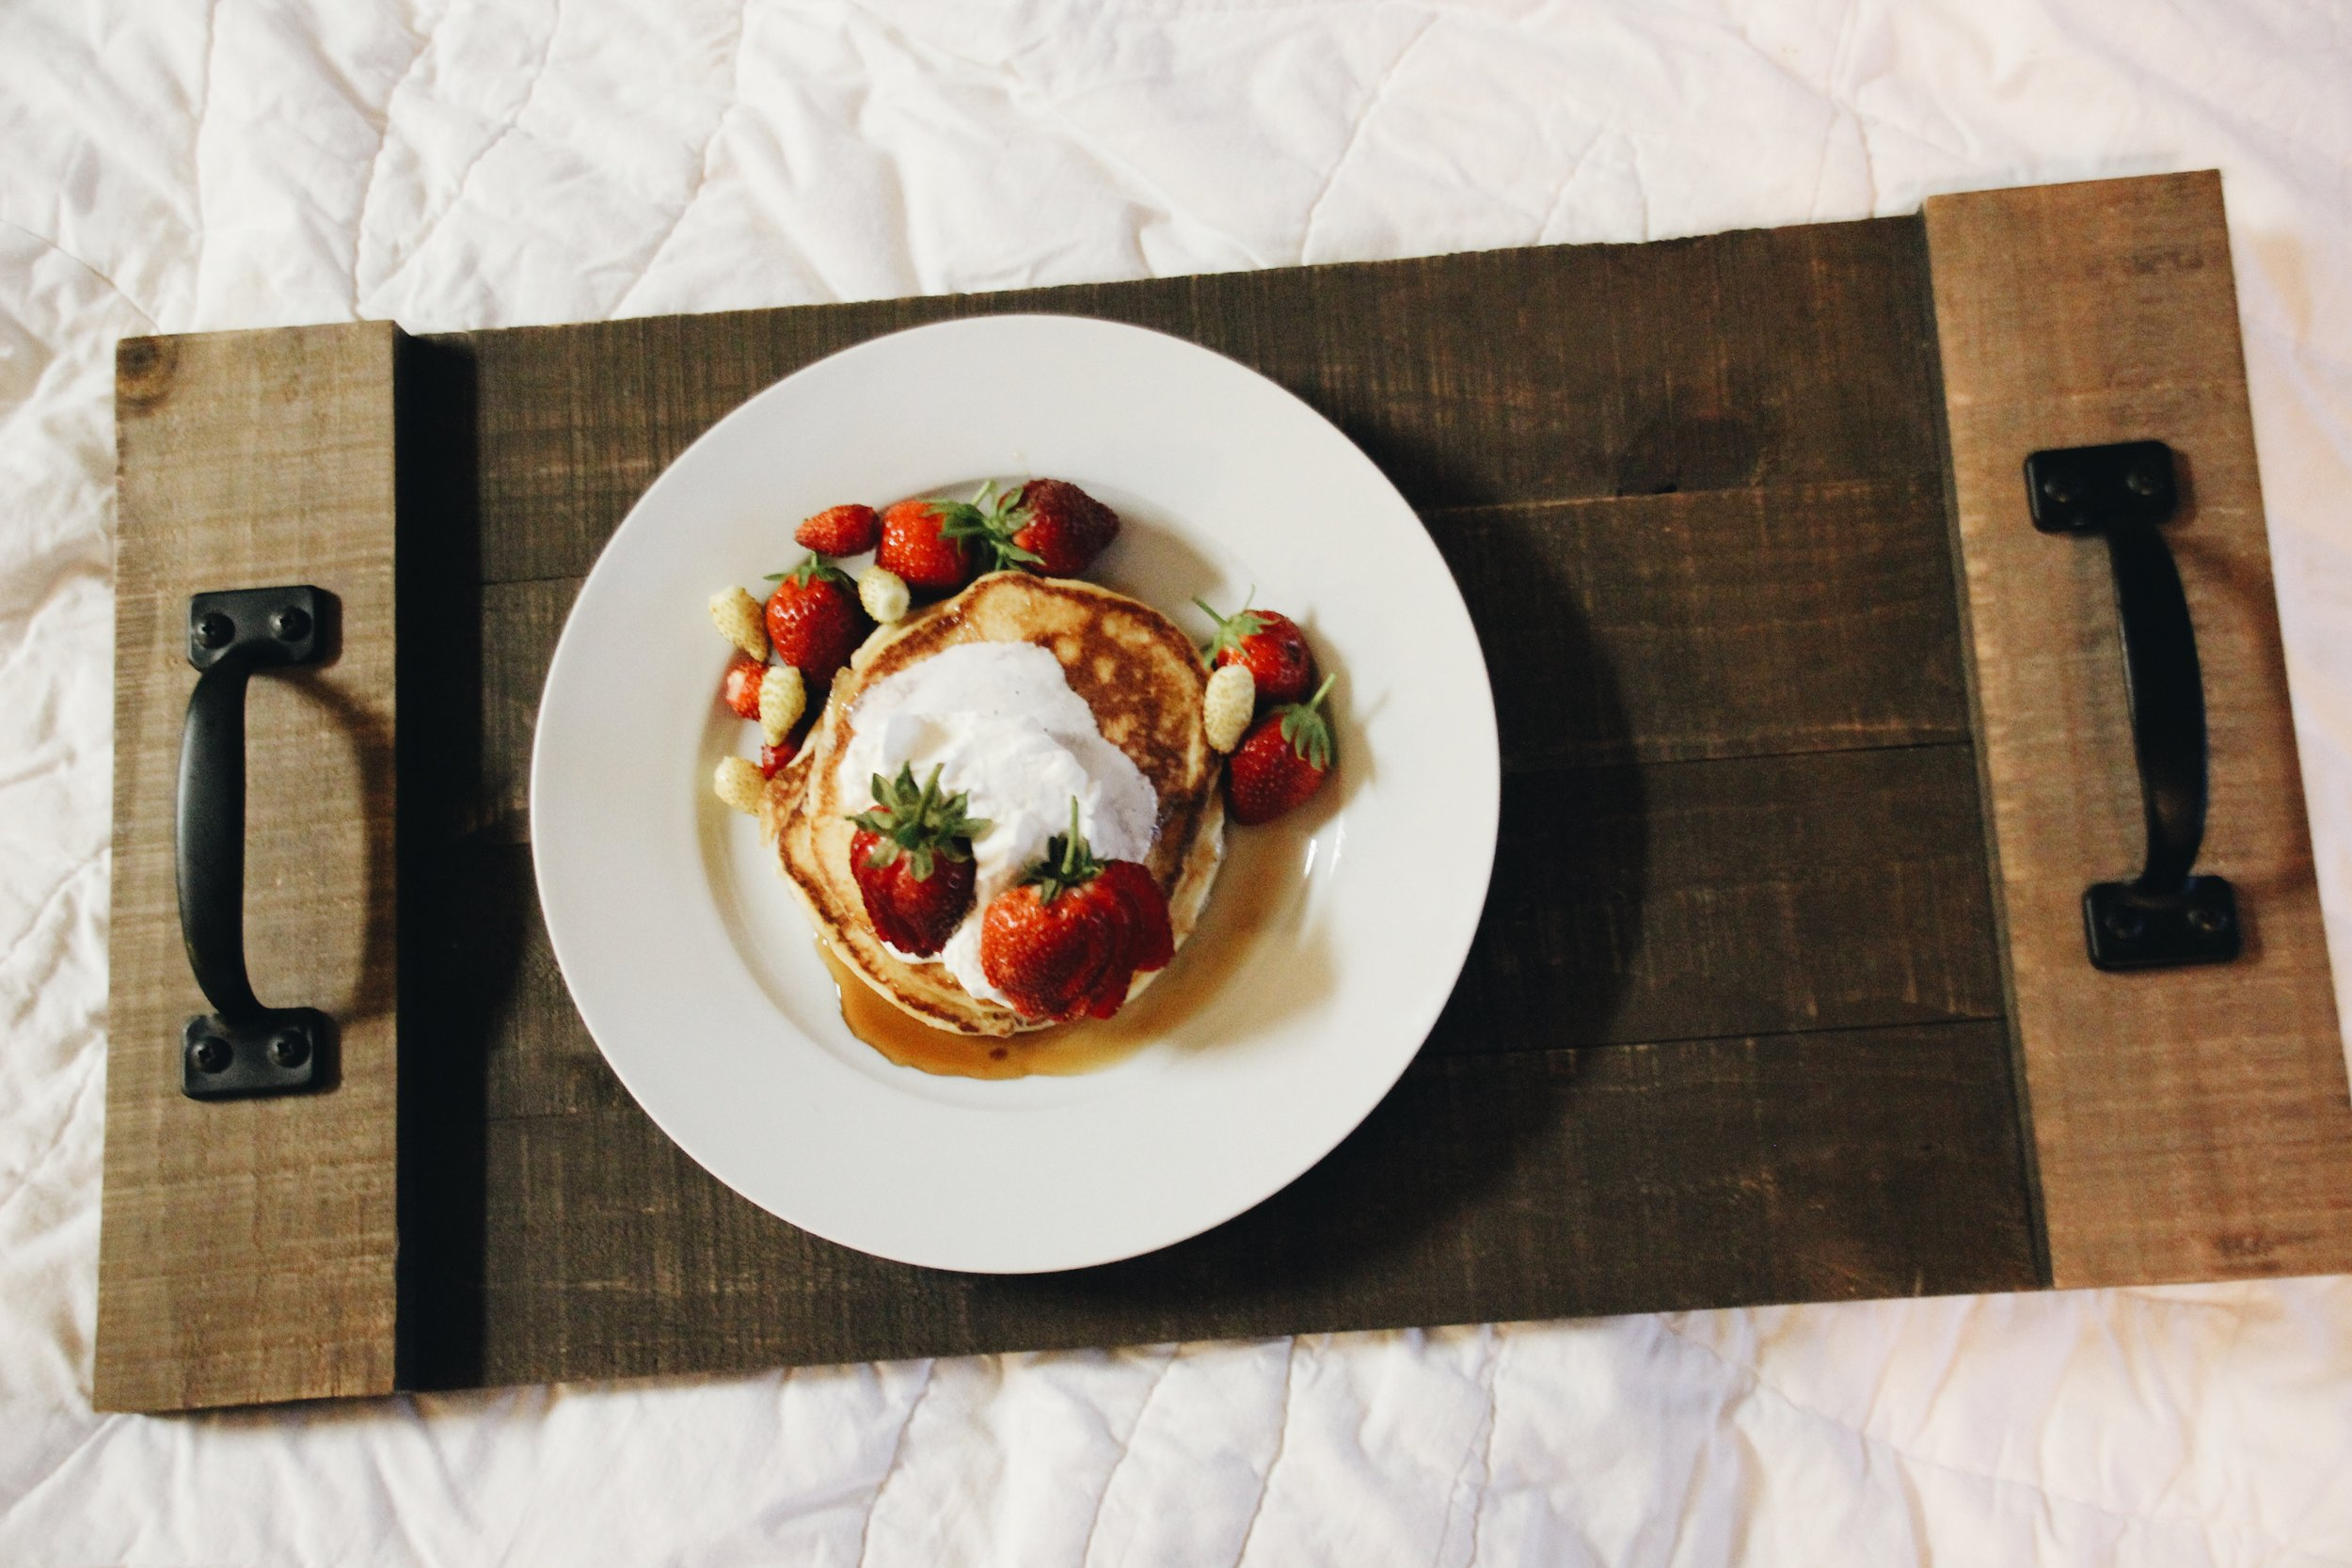 Highly recommend breakfast in bed if you have the chance.